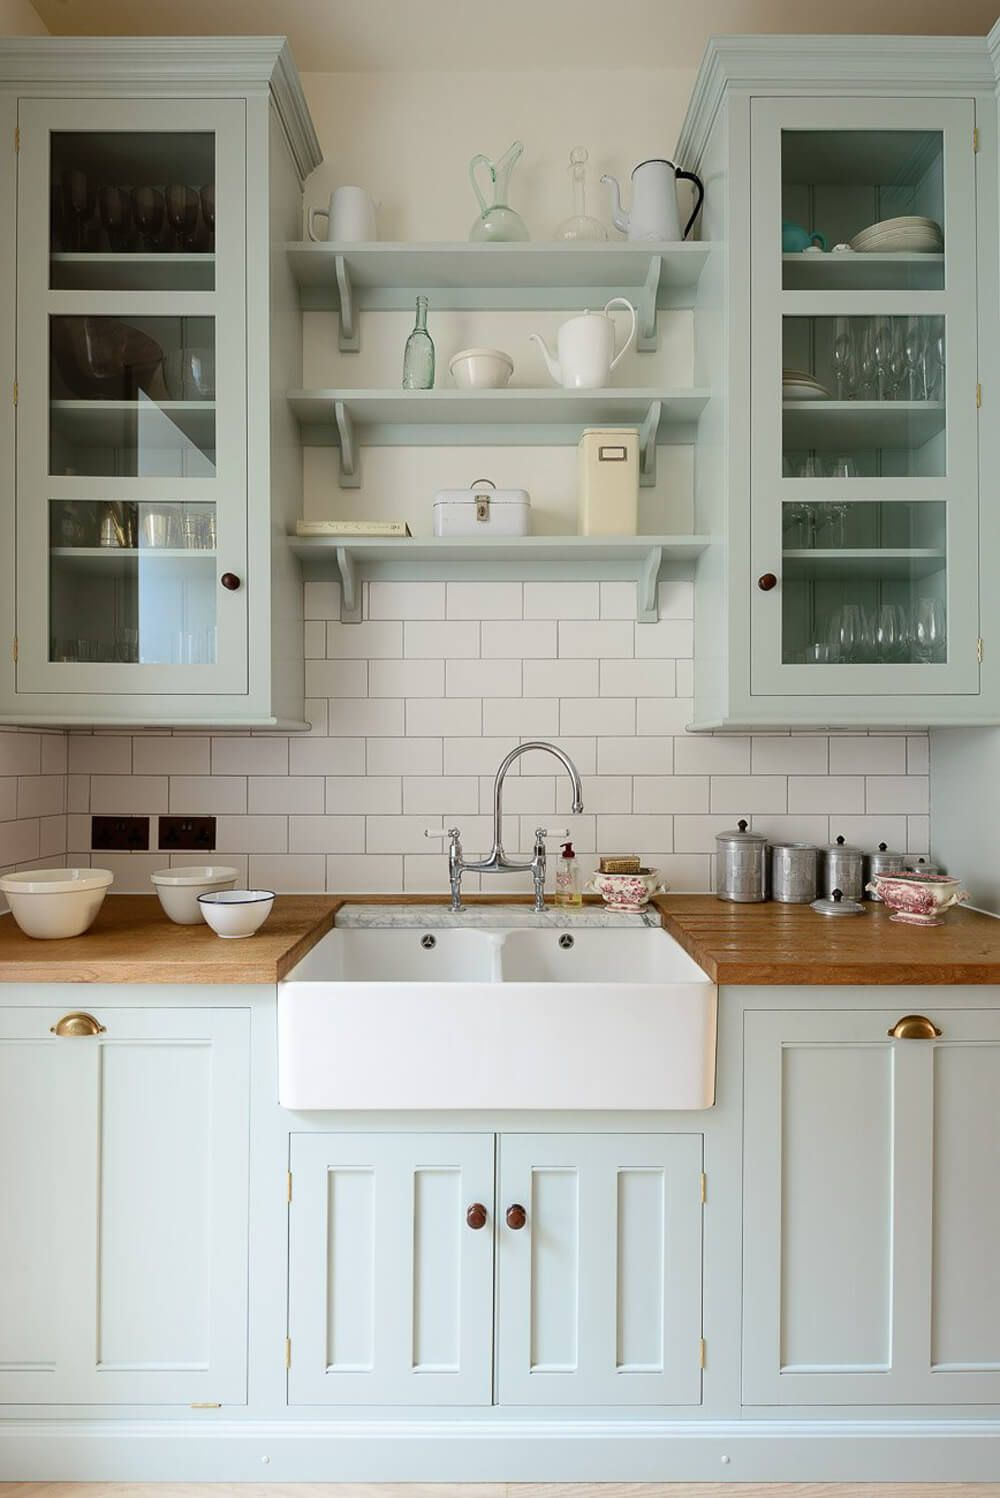 House inspiration devol kitchen devol kitchens english cottage